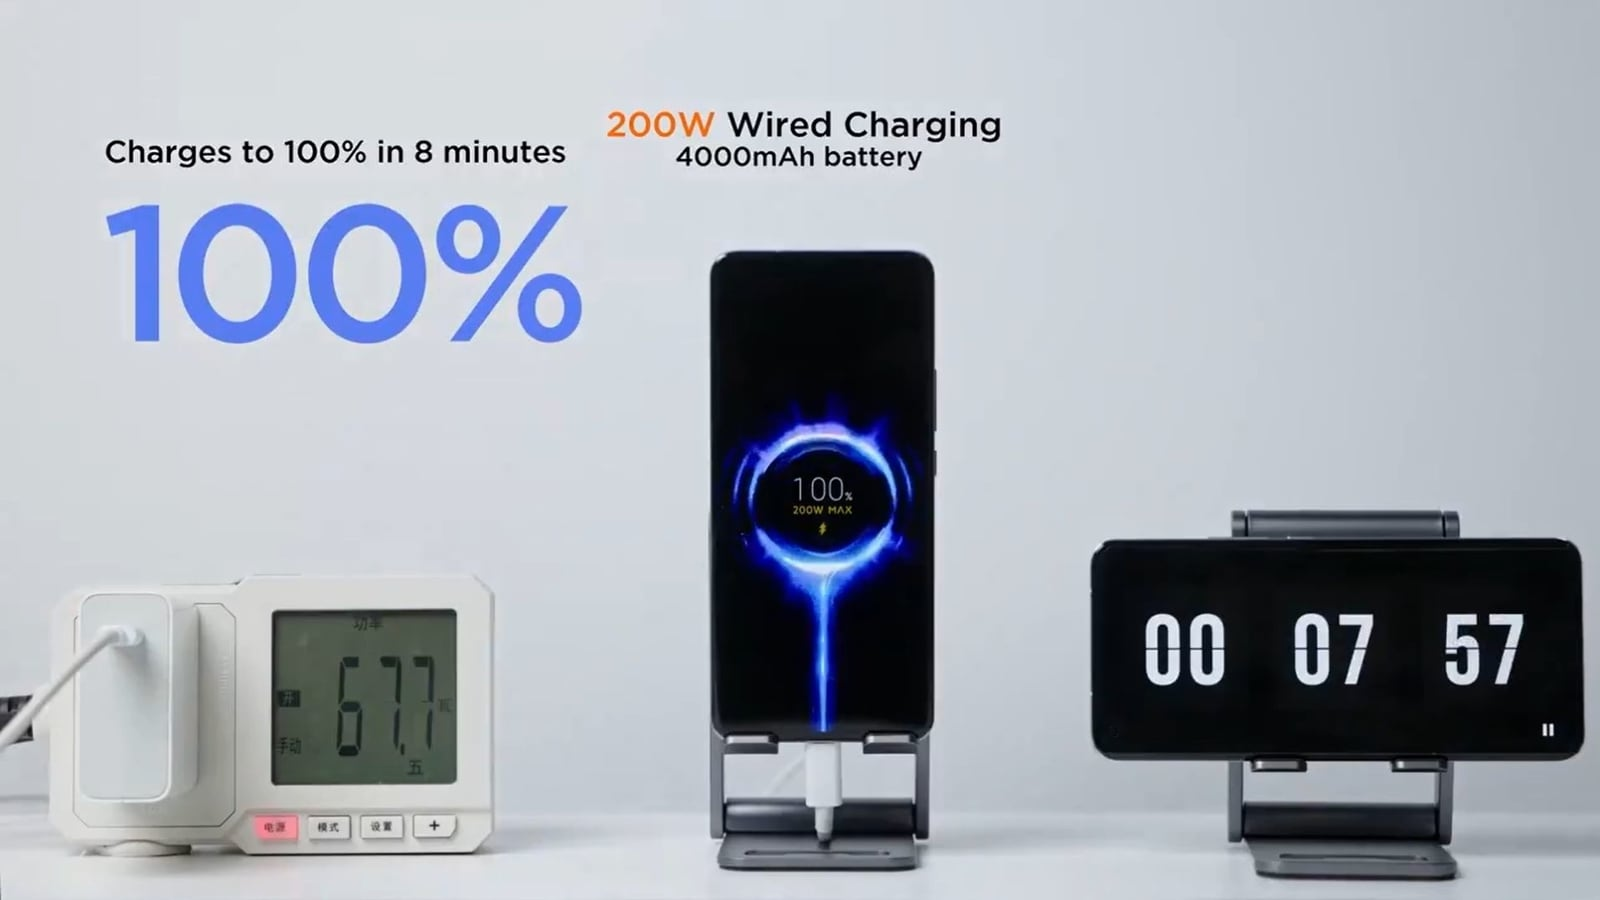 100% battery in just 8 minutes: Xiaomi showcases 200W 'HyperCharge' tech